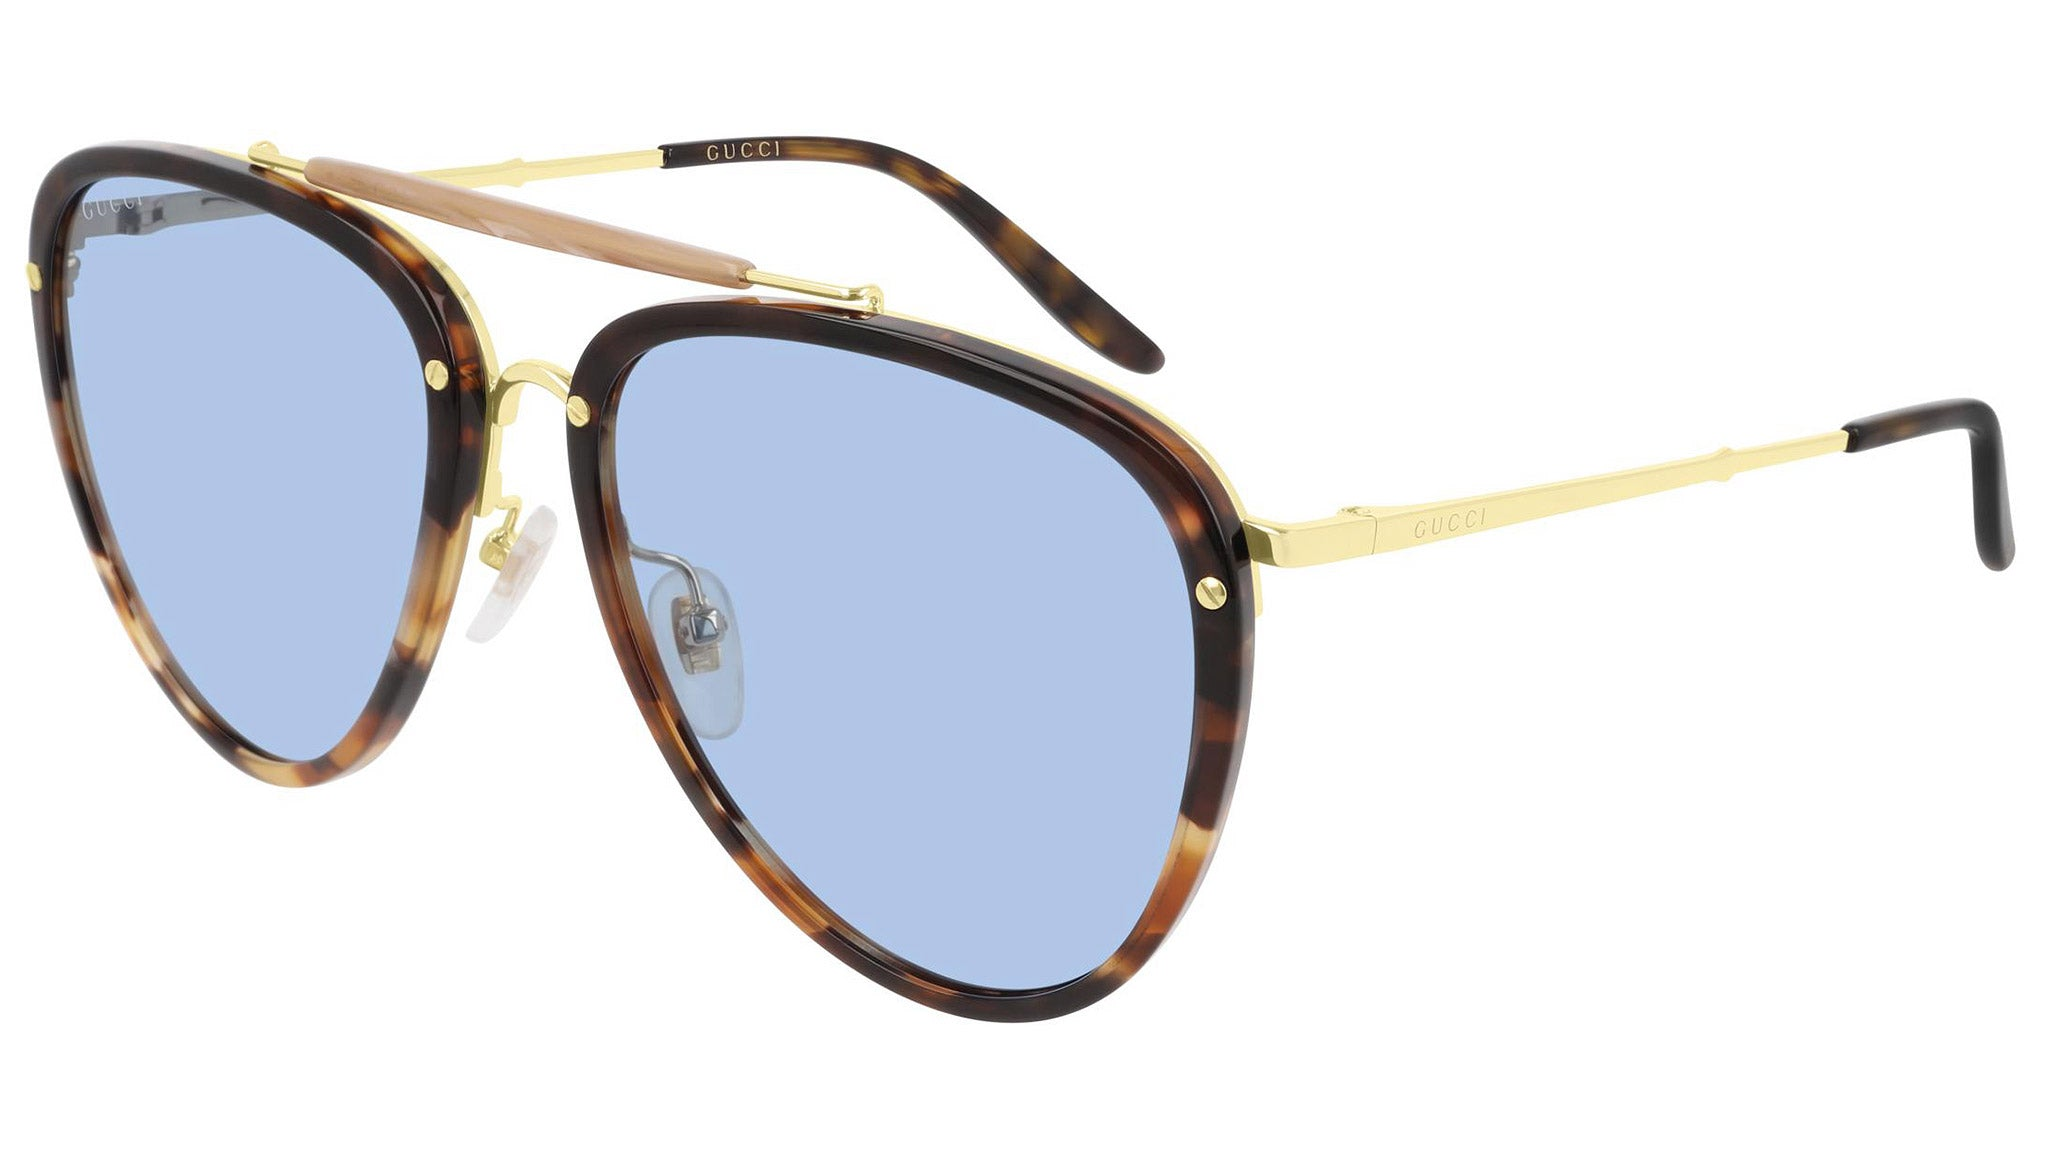 GG0672S yellow havana and blue